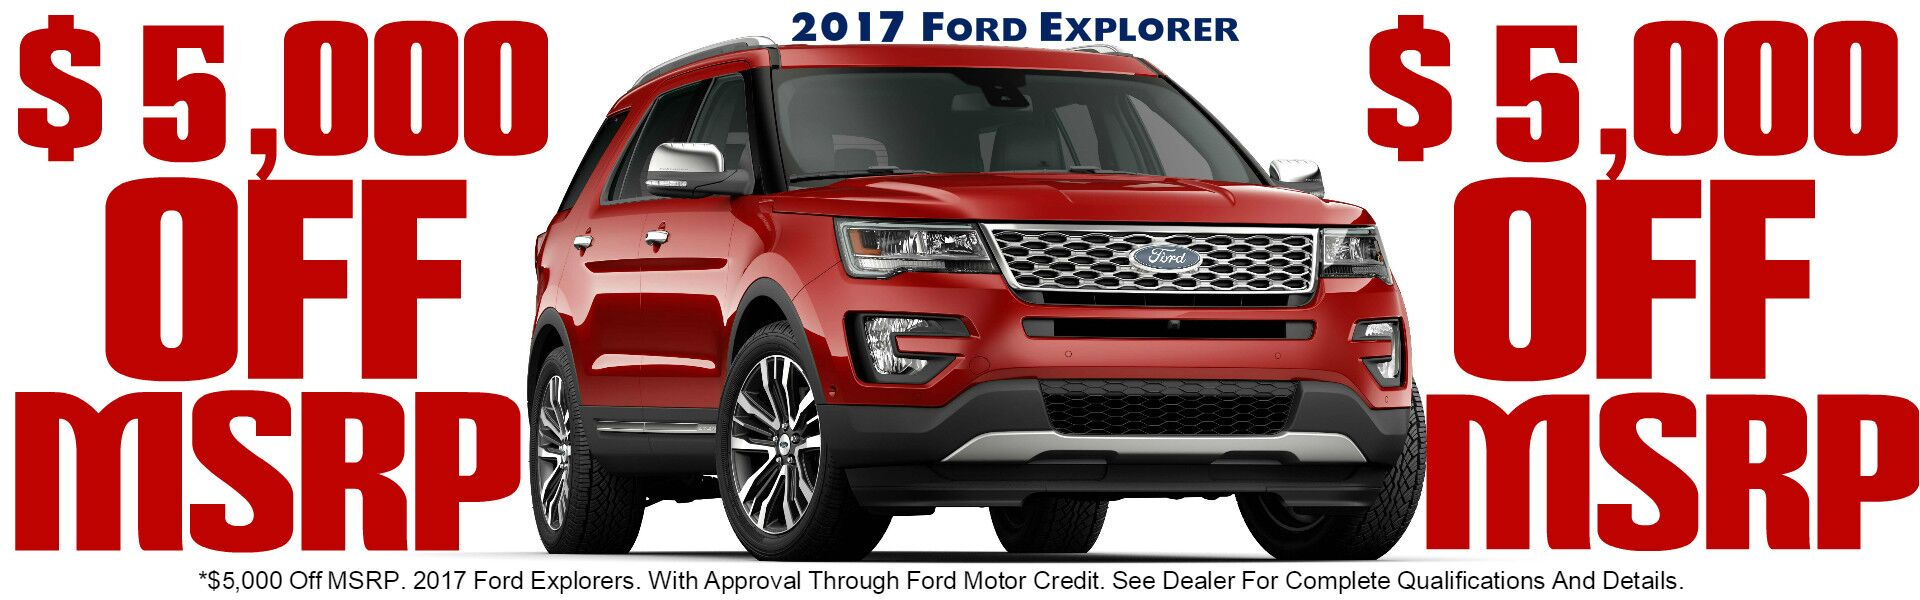 Donnell Ford Banner Ford Explorer Feb. 2017